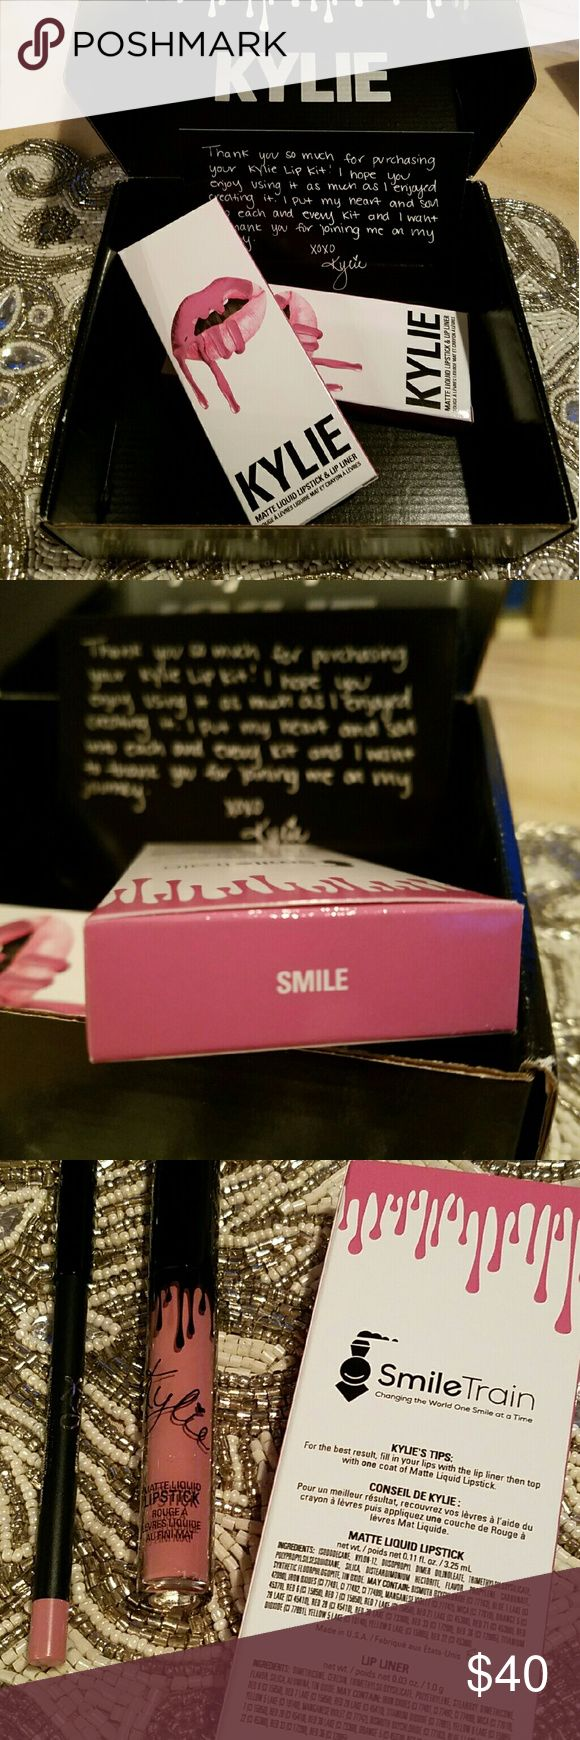 NWT Authentic Kylie Cosmetics Smile Lip Kit Brand New and Authentic Kylie Cosmetics Smile Lip Kit. With Taxes and Shipping this would be $40 from Kylie's Website Bundle 2 or more items with me and you'll be ahead. Kylie Cosmetics Makeup